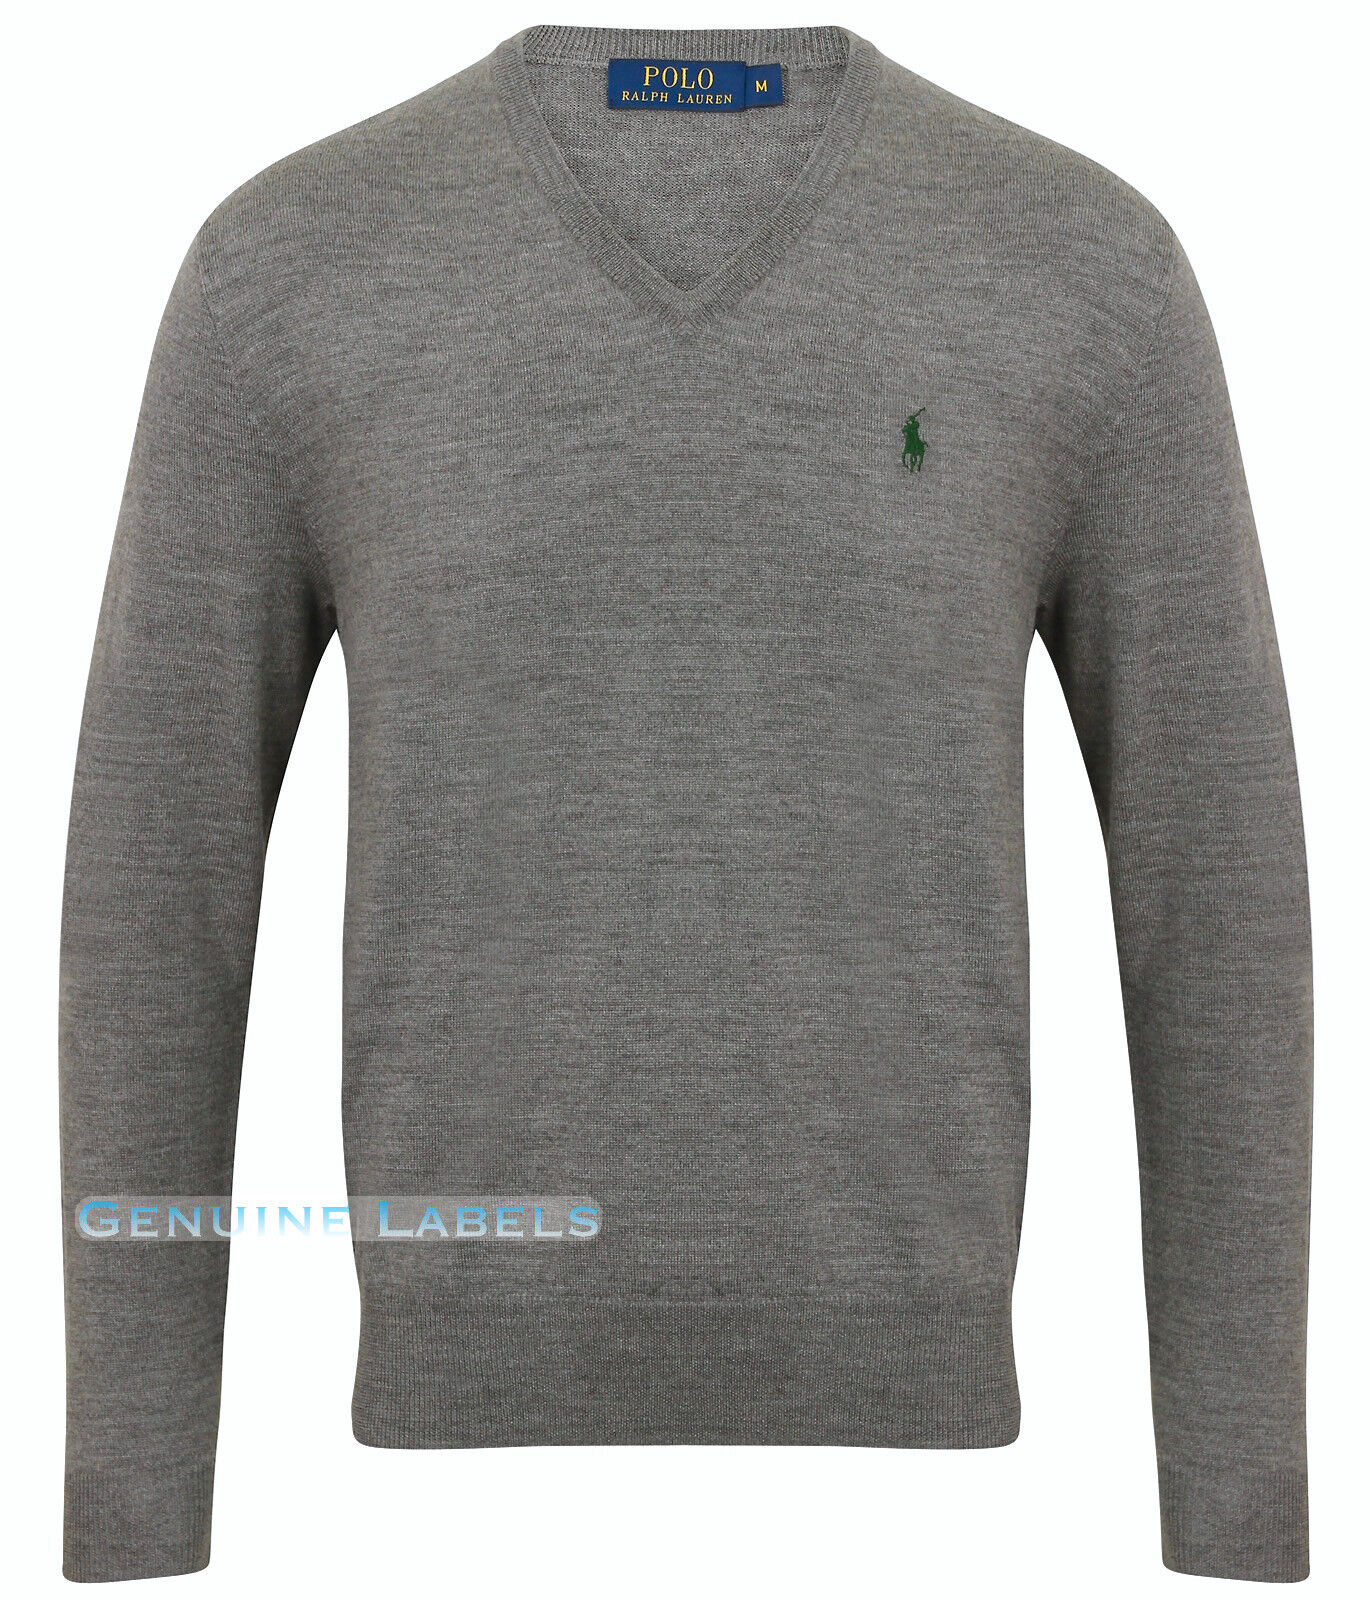 228618778eea8 Ralph Lauren Polo Mens Grey V Neck Merino Wool Jumper M-XXL RRP £125  GENUINE!